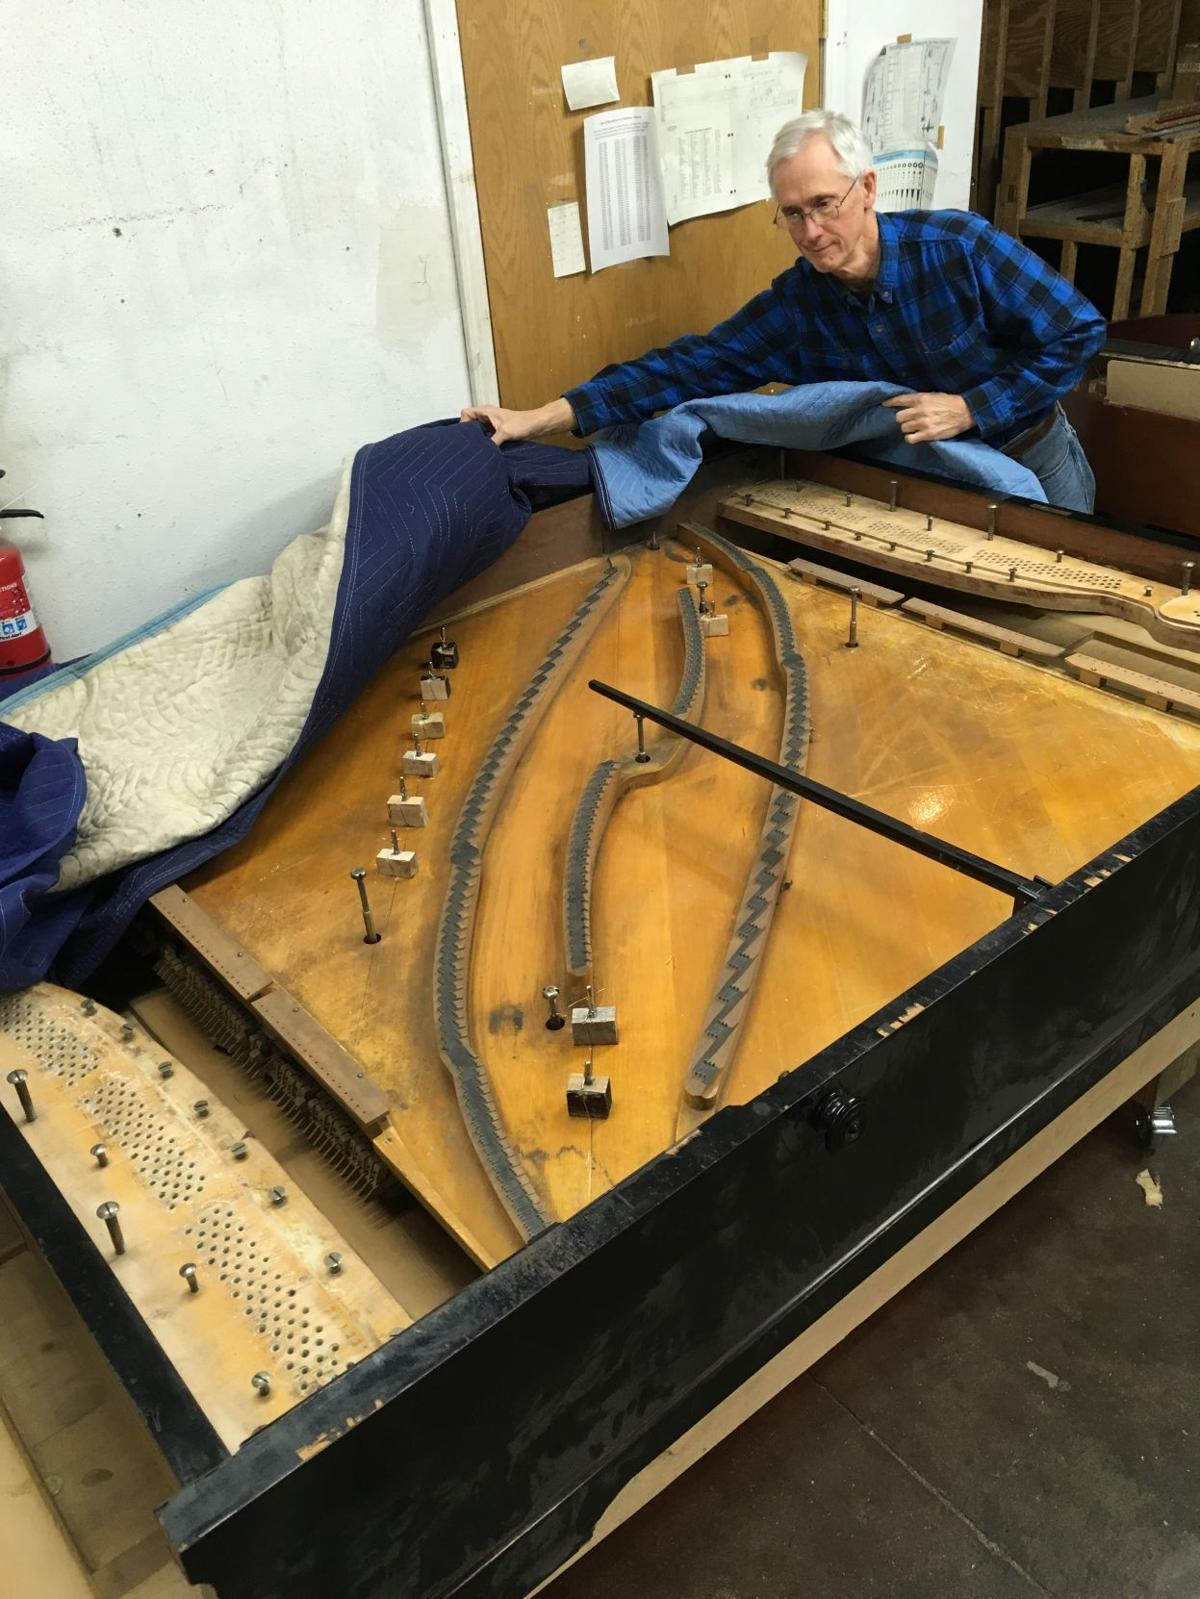 Ickes: The strange story of the Pleyel double grand | Barb